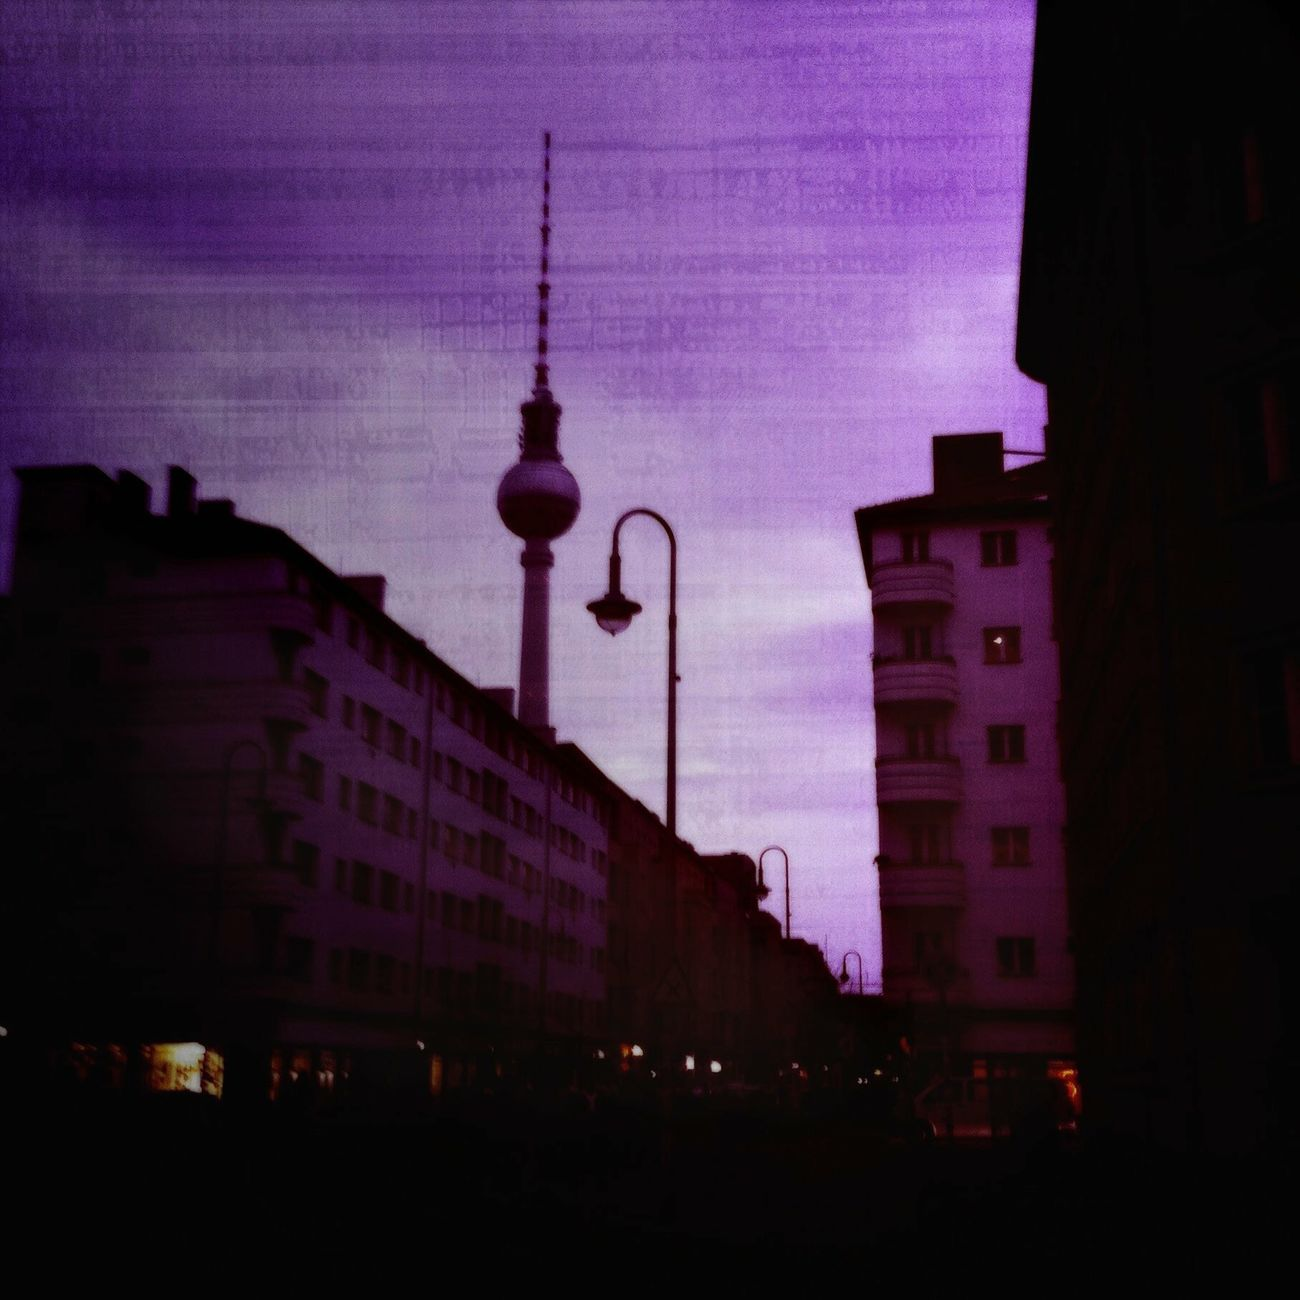 Capture Berlin Berlin City Travel Destinations Travel Photography Architecture Tower Telekom Architecture Playing With Filters IPhoneography Cityscapes Buildings Colours Colour Of Life Street Lamp (null)Lamppost (null)Purple